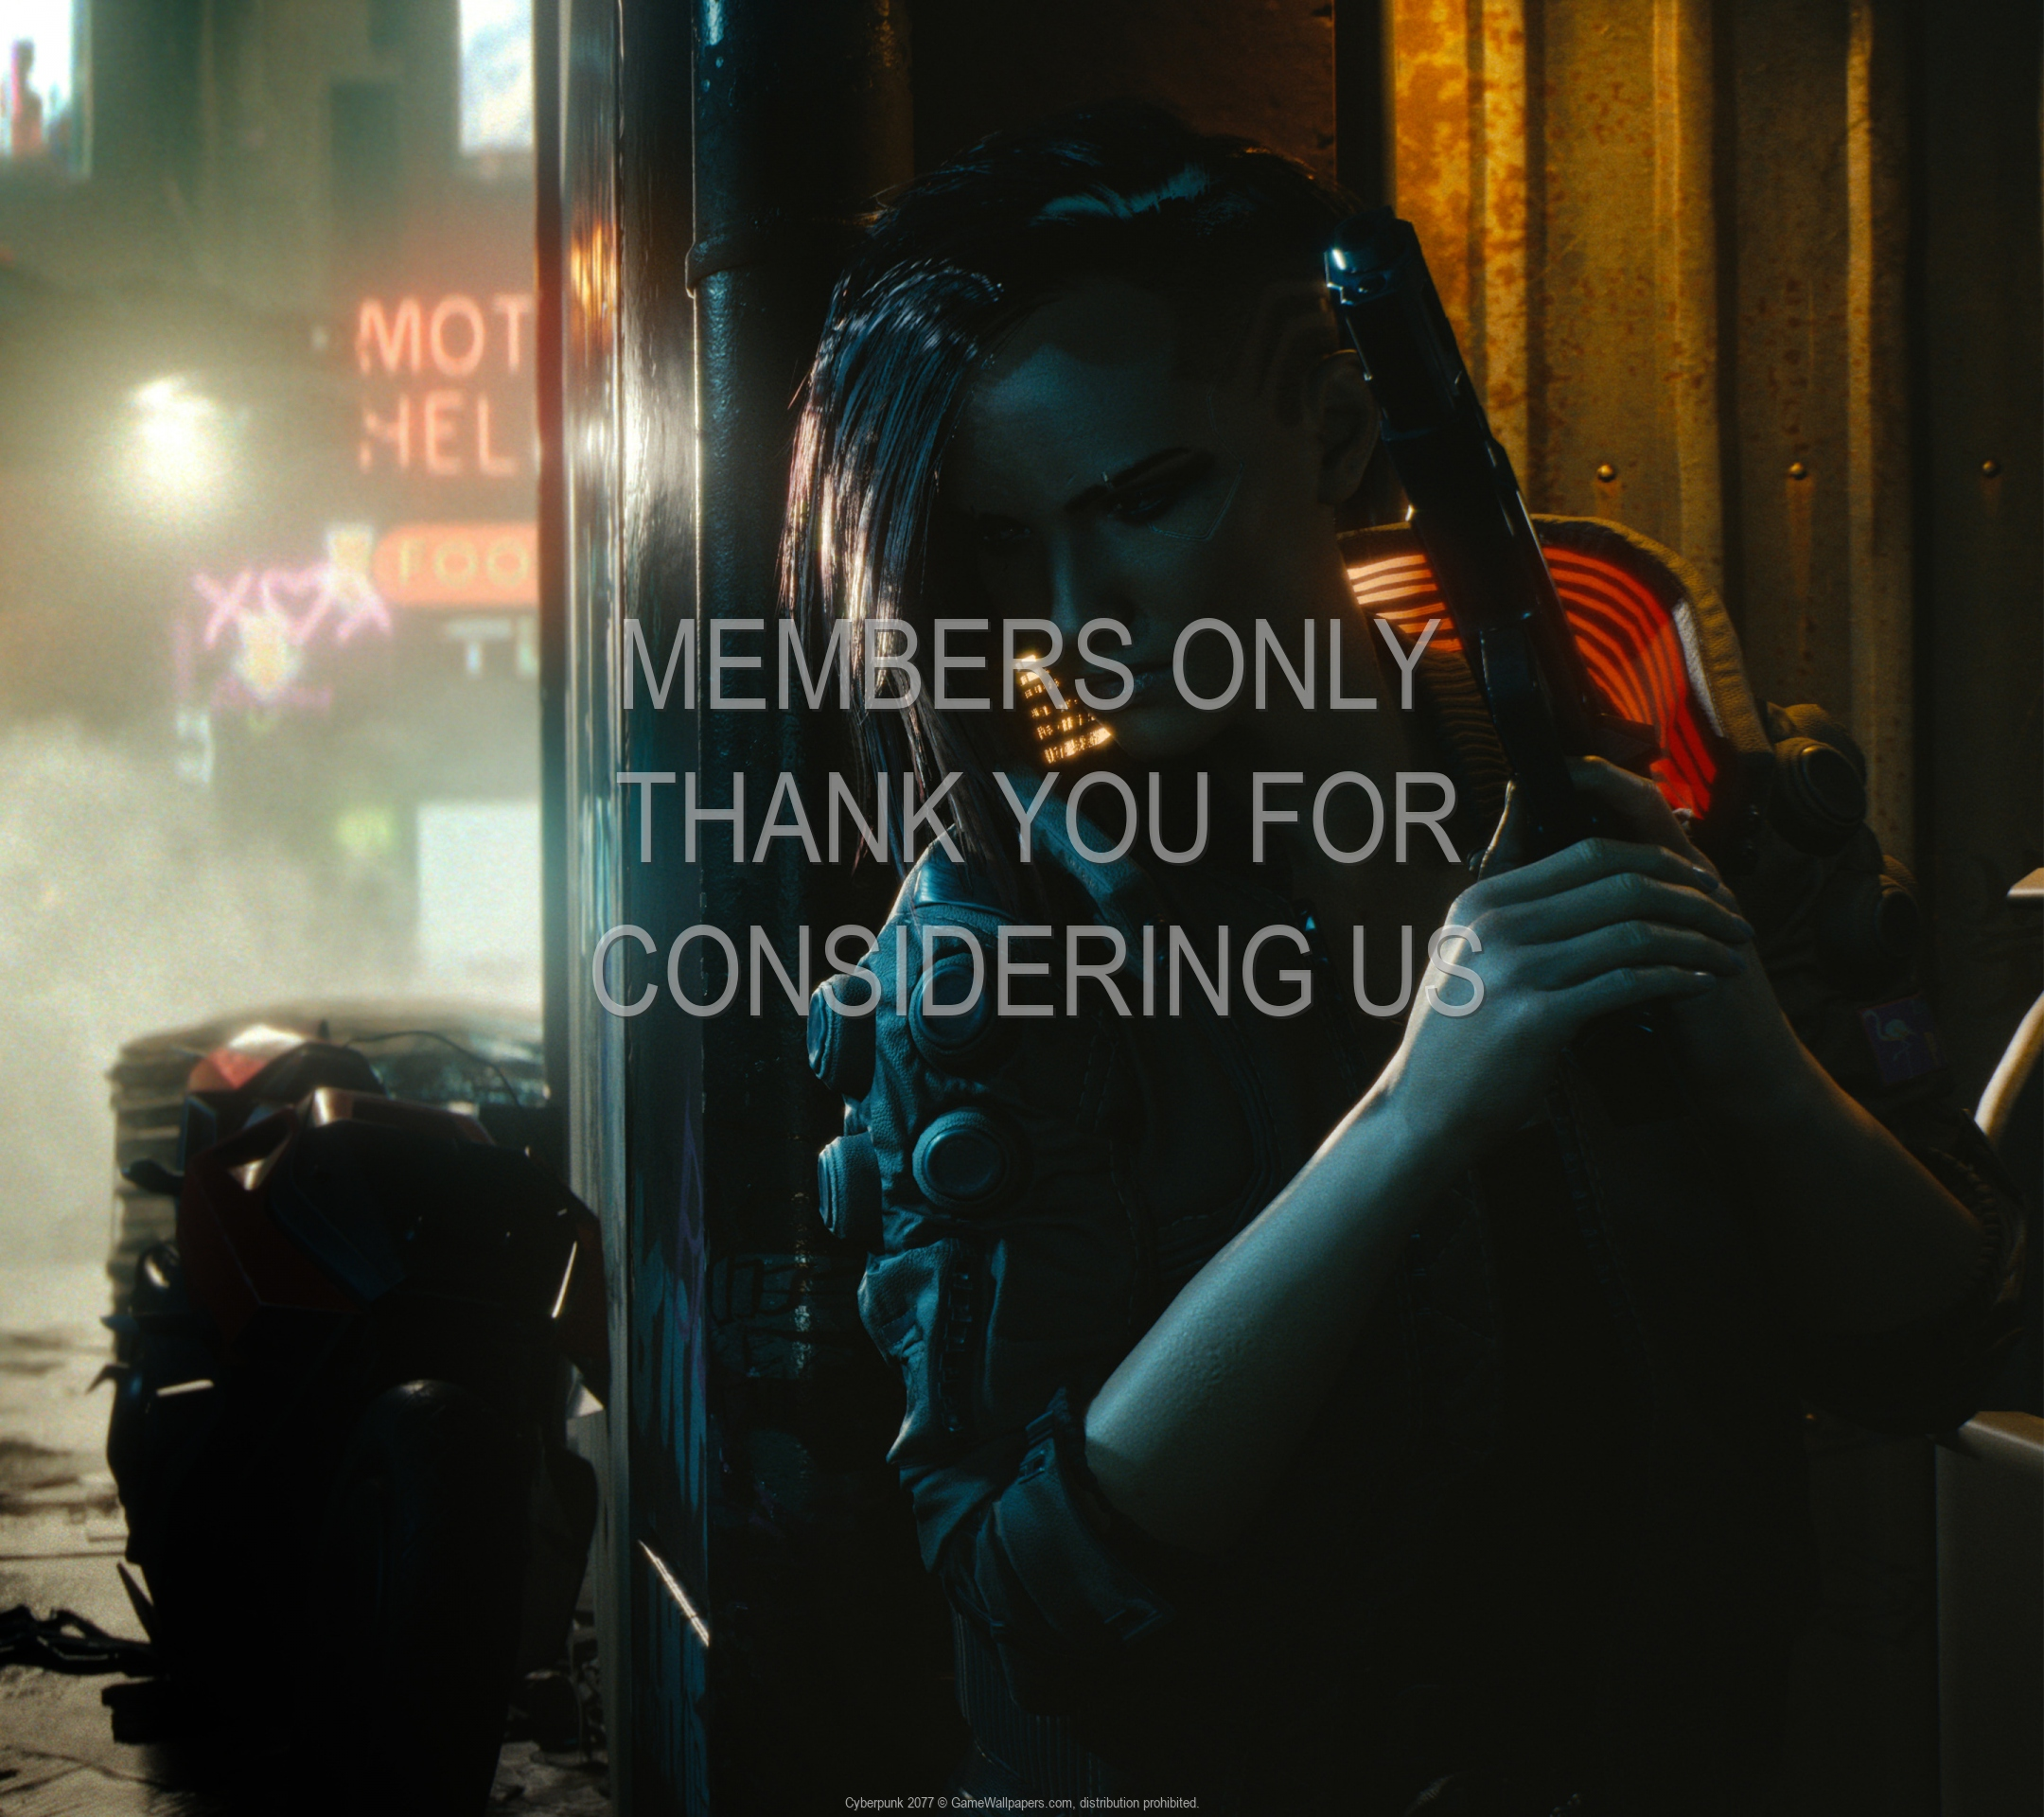 Cyberpunk 2077 1920x1080 Mobile wallpaper or background 05